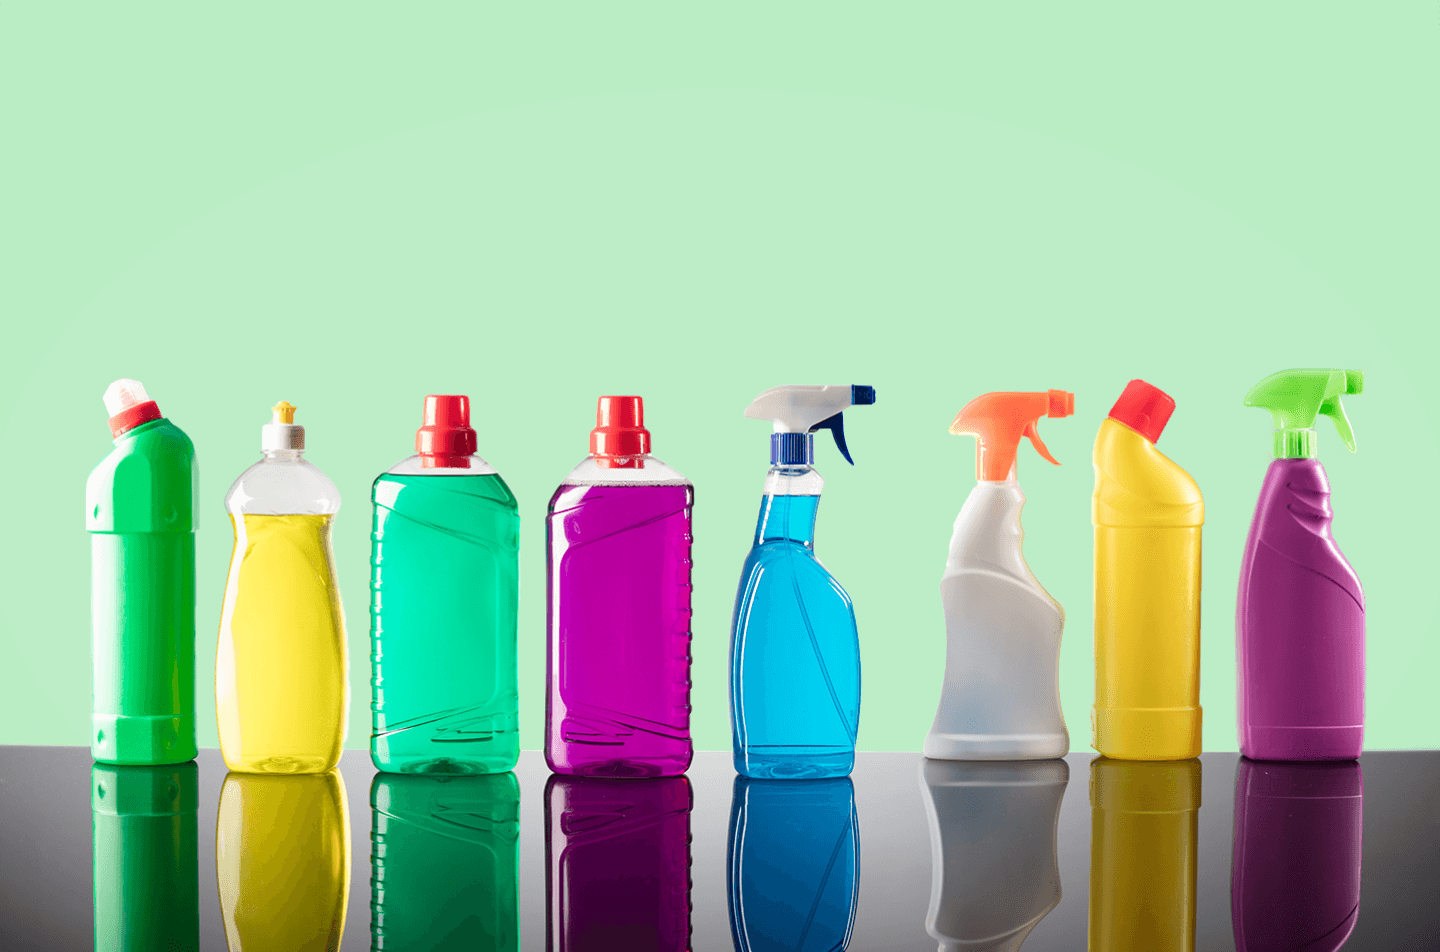 Do Cleaning Products Alter the Gut Microbiome?